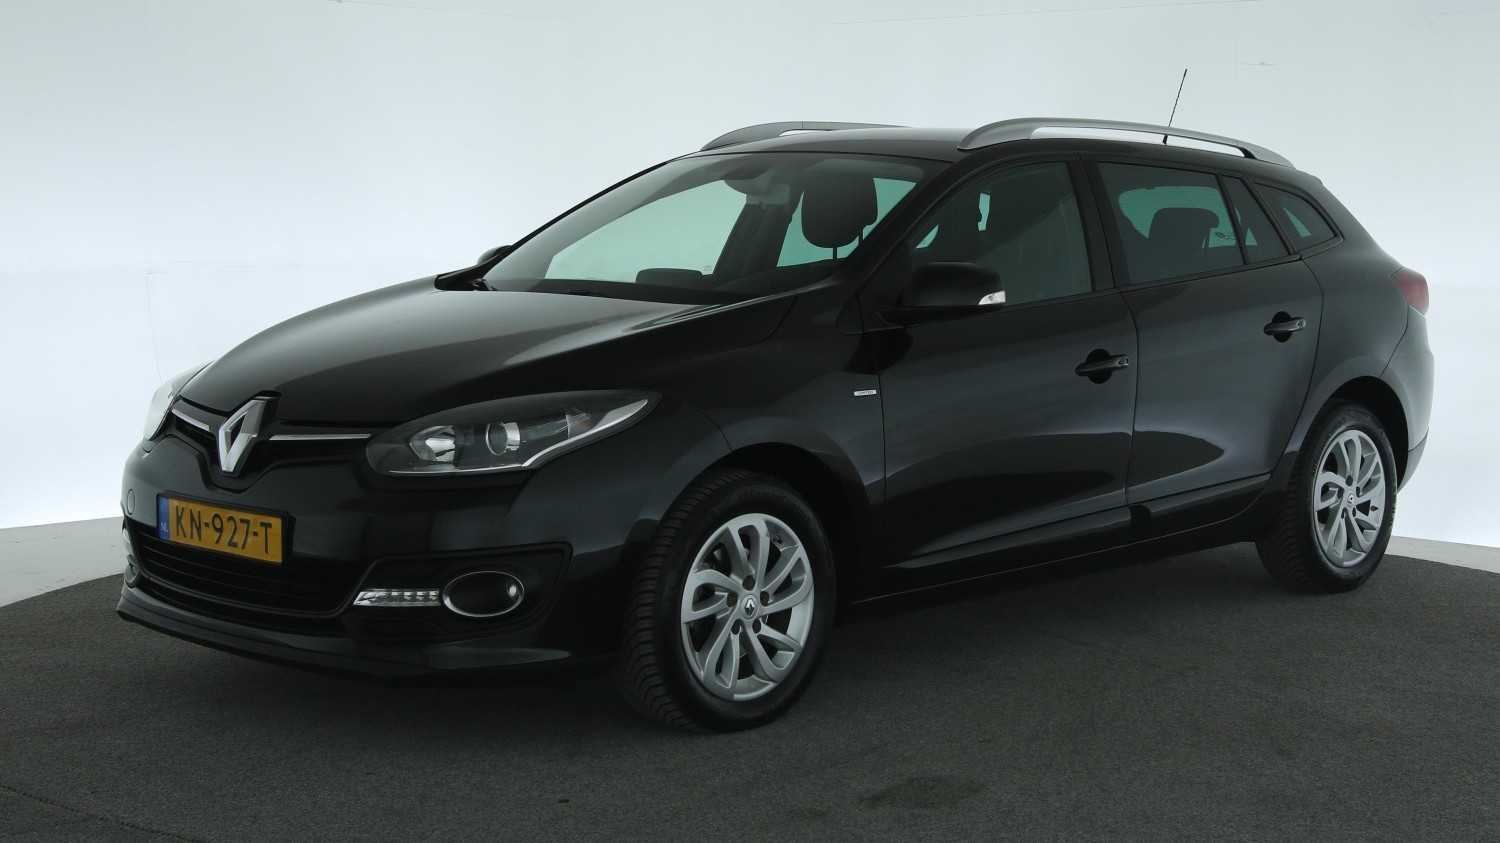 Renault Mégane Station 2015 KN-927-T 1